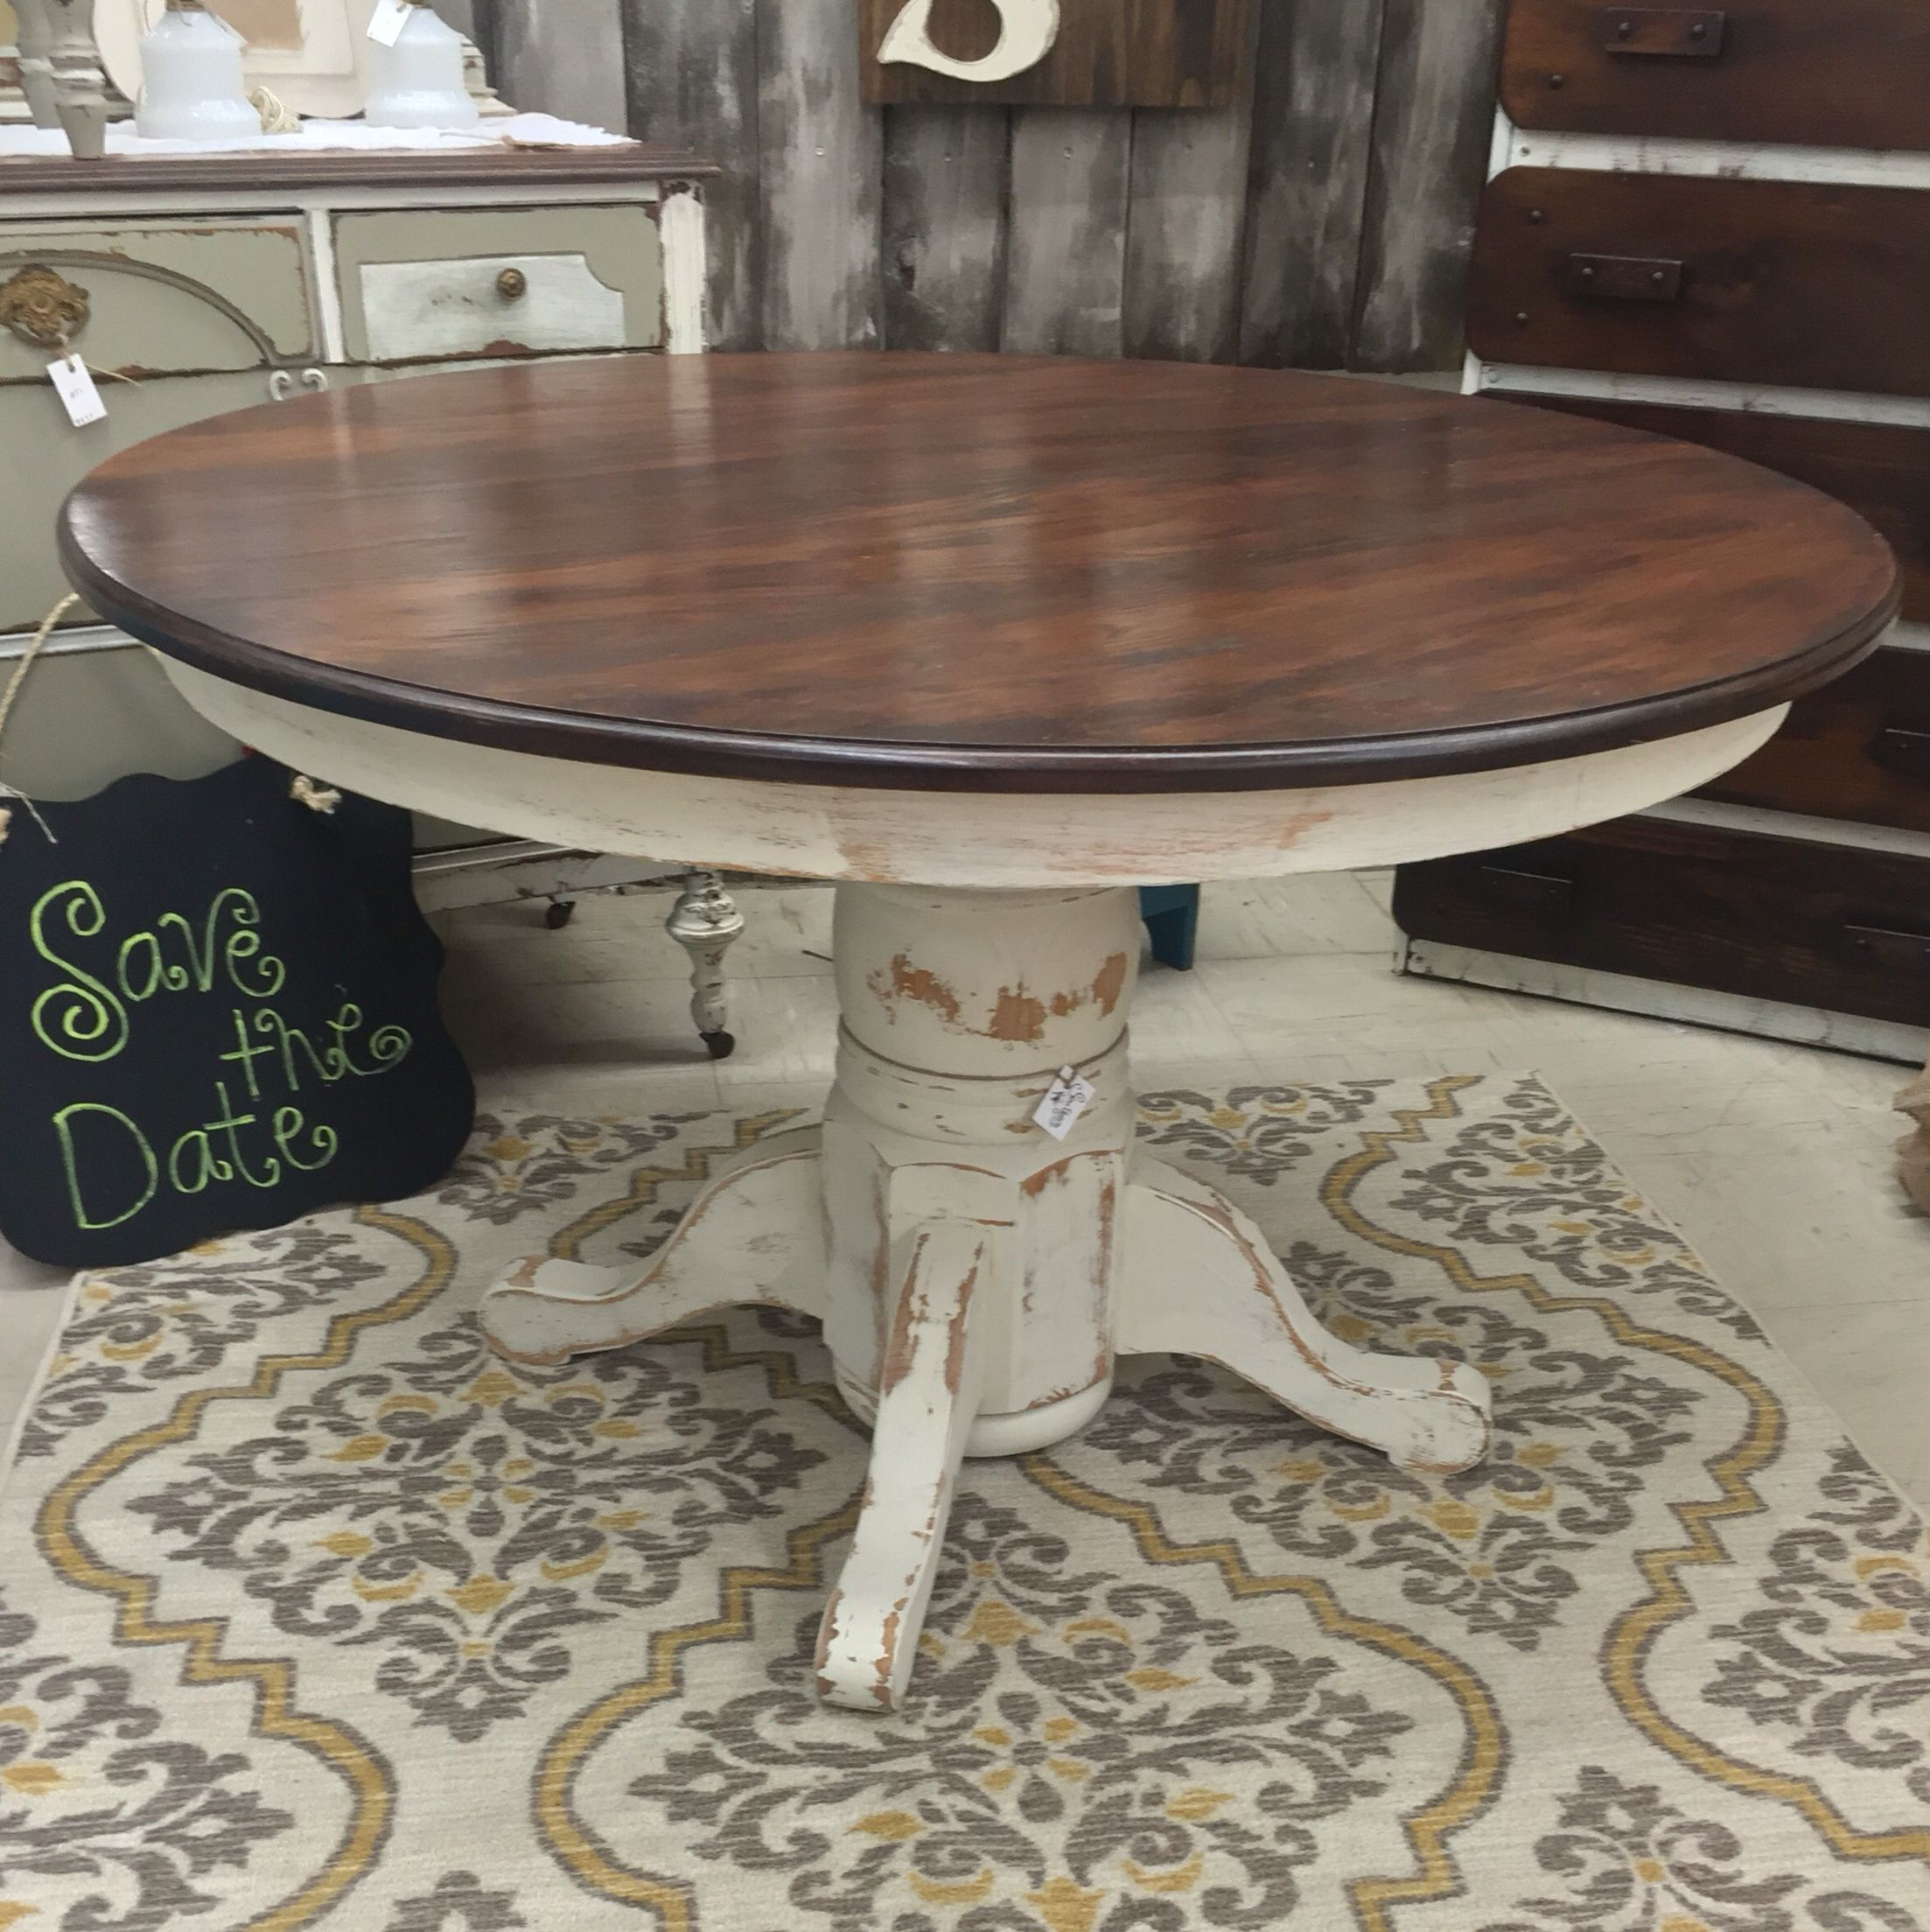 Kitchen Table Painted With Dixiebellepaint And Generalfinish Javagelstain Top